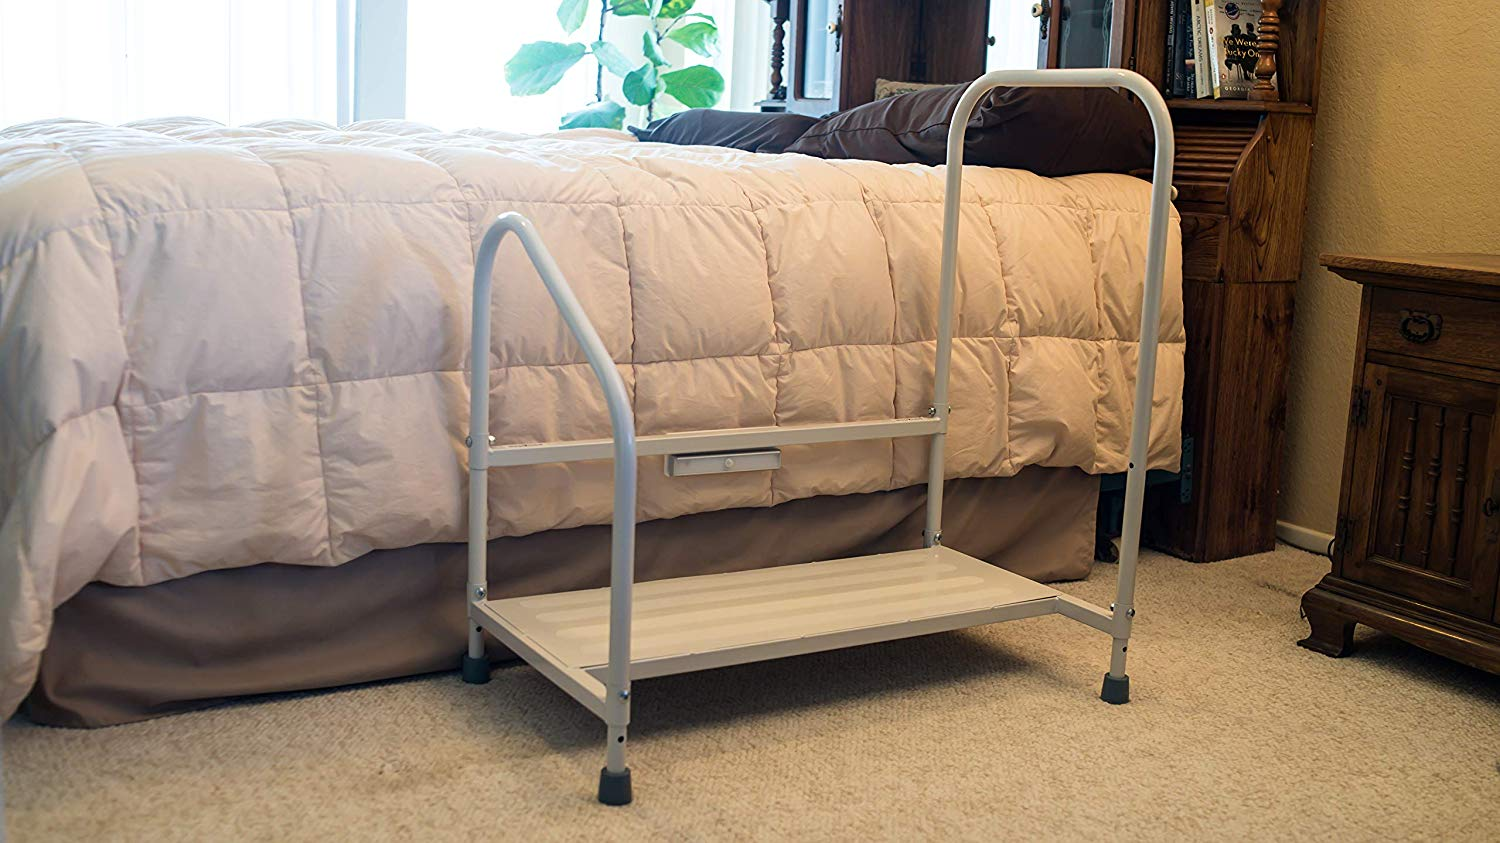 8 Best Dependable Bedside Step Stool For Seniors In 2020 Peachy Rooms